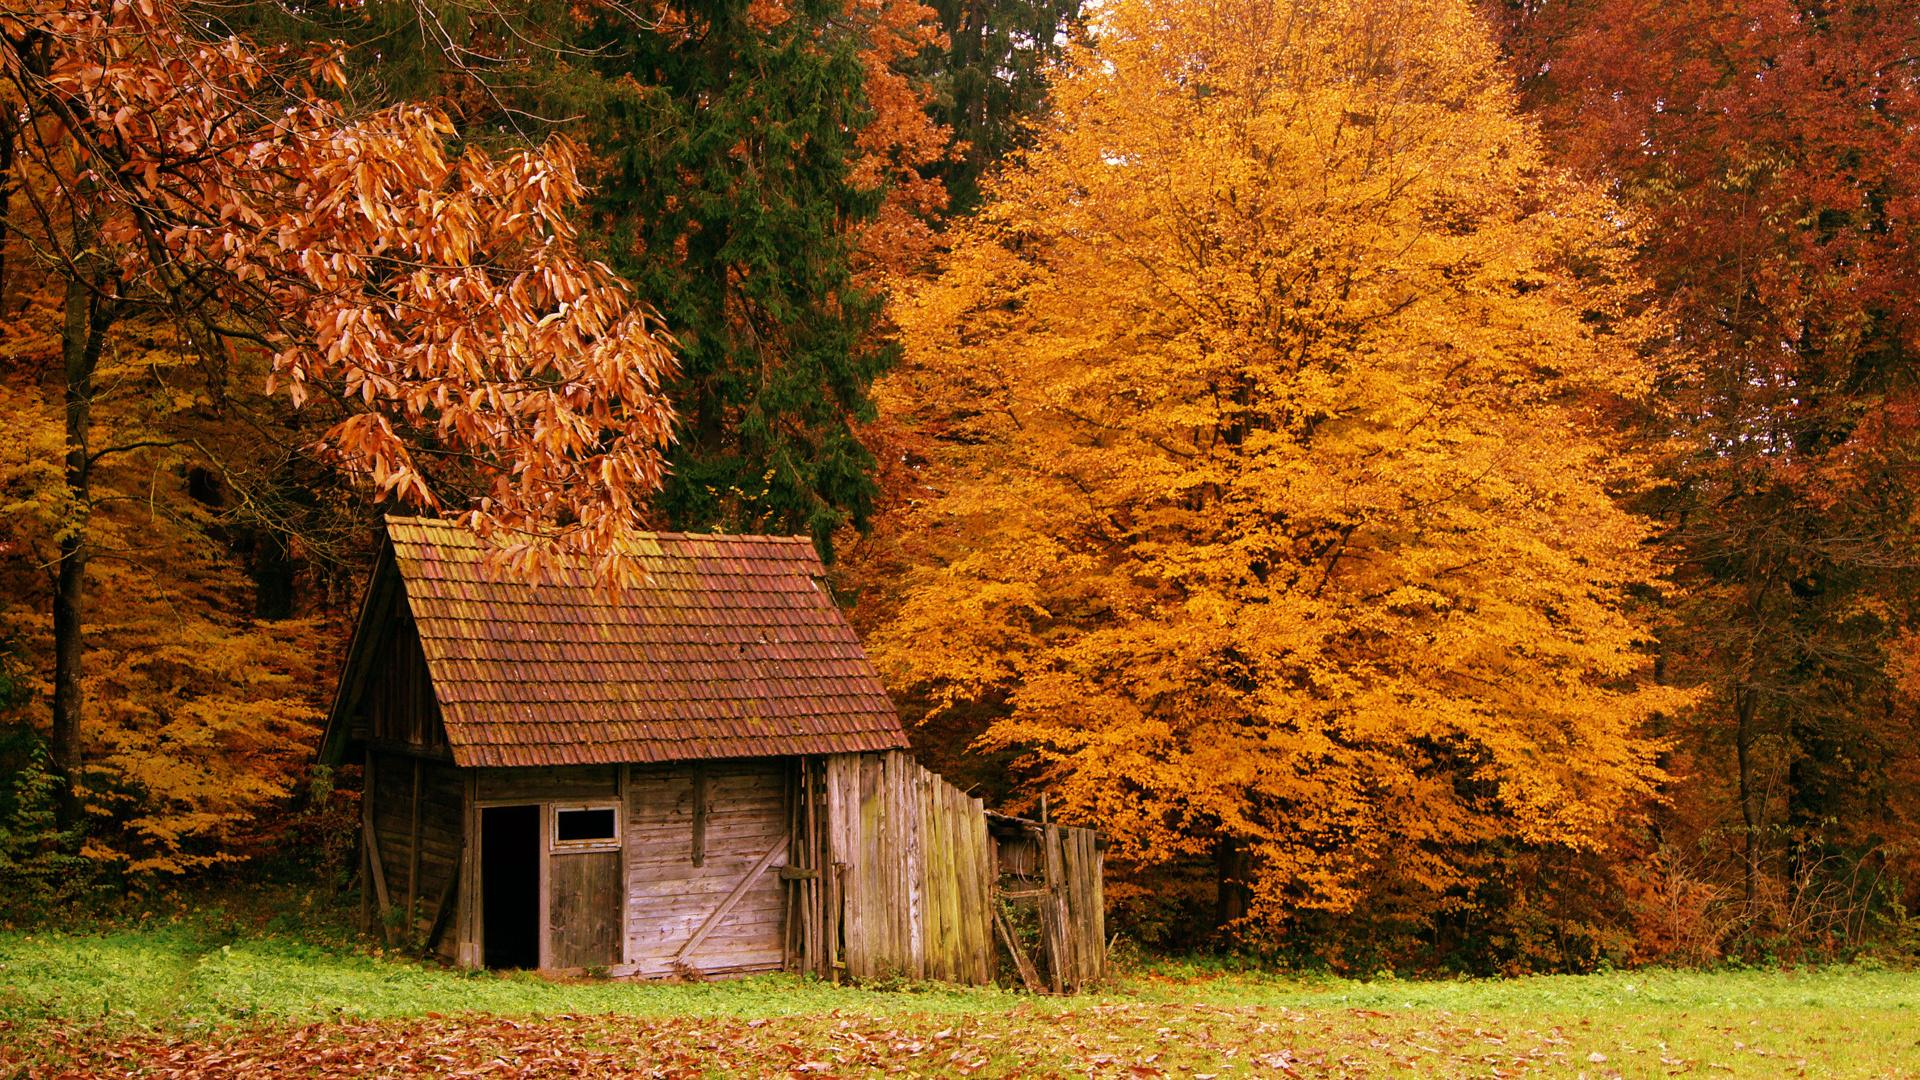 The Cabin In The Autumn Woods Hd Wallpaper | Wallpaper List 151